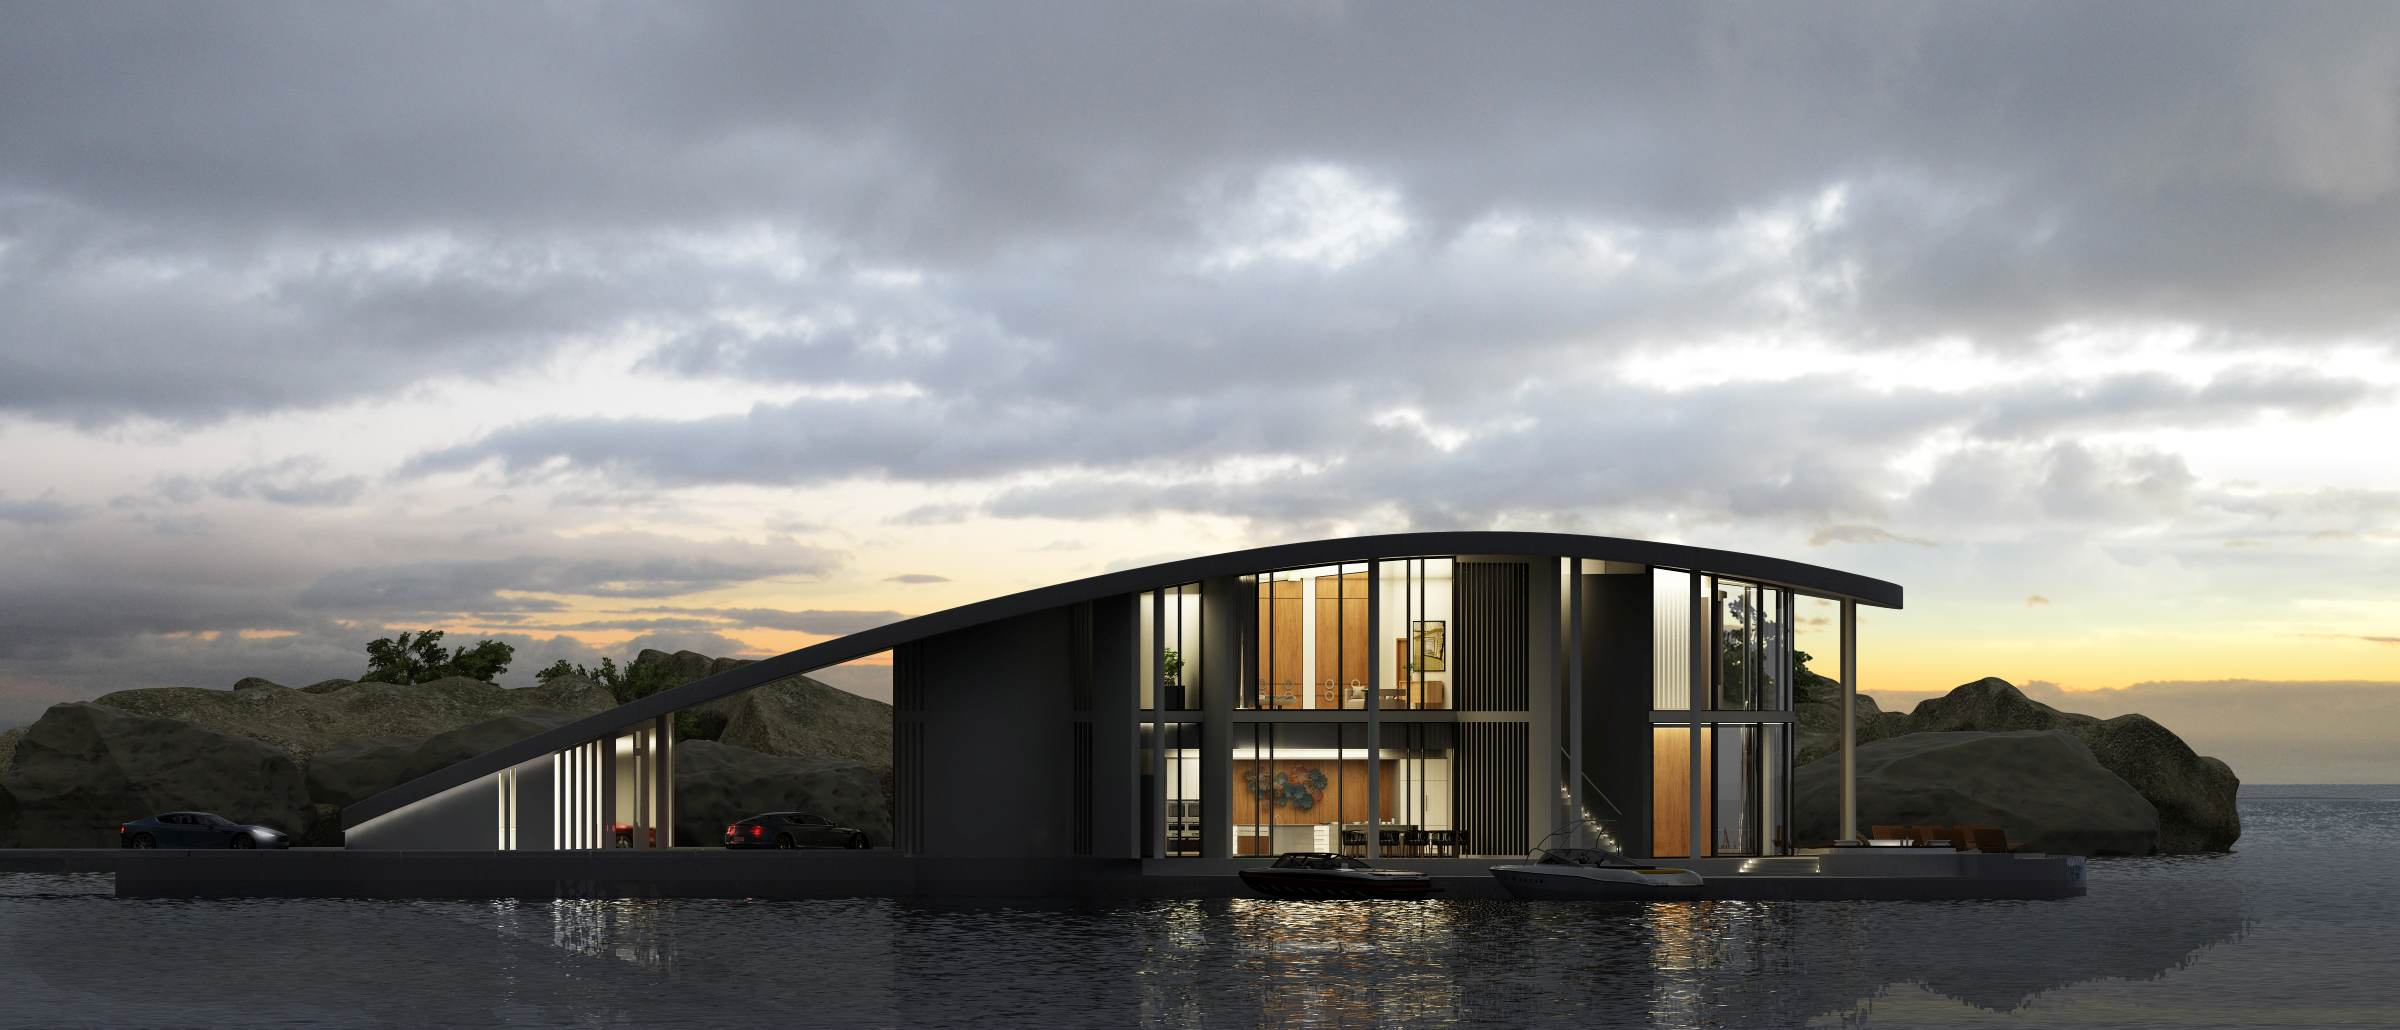 Tangram 3ds Stingray Floating House Featured